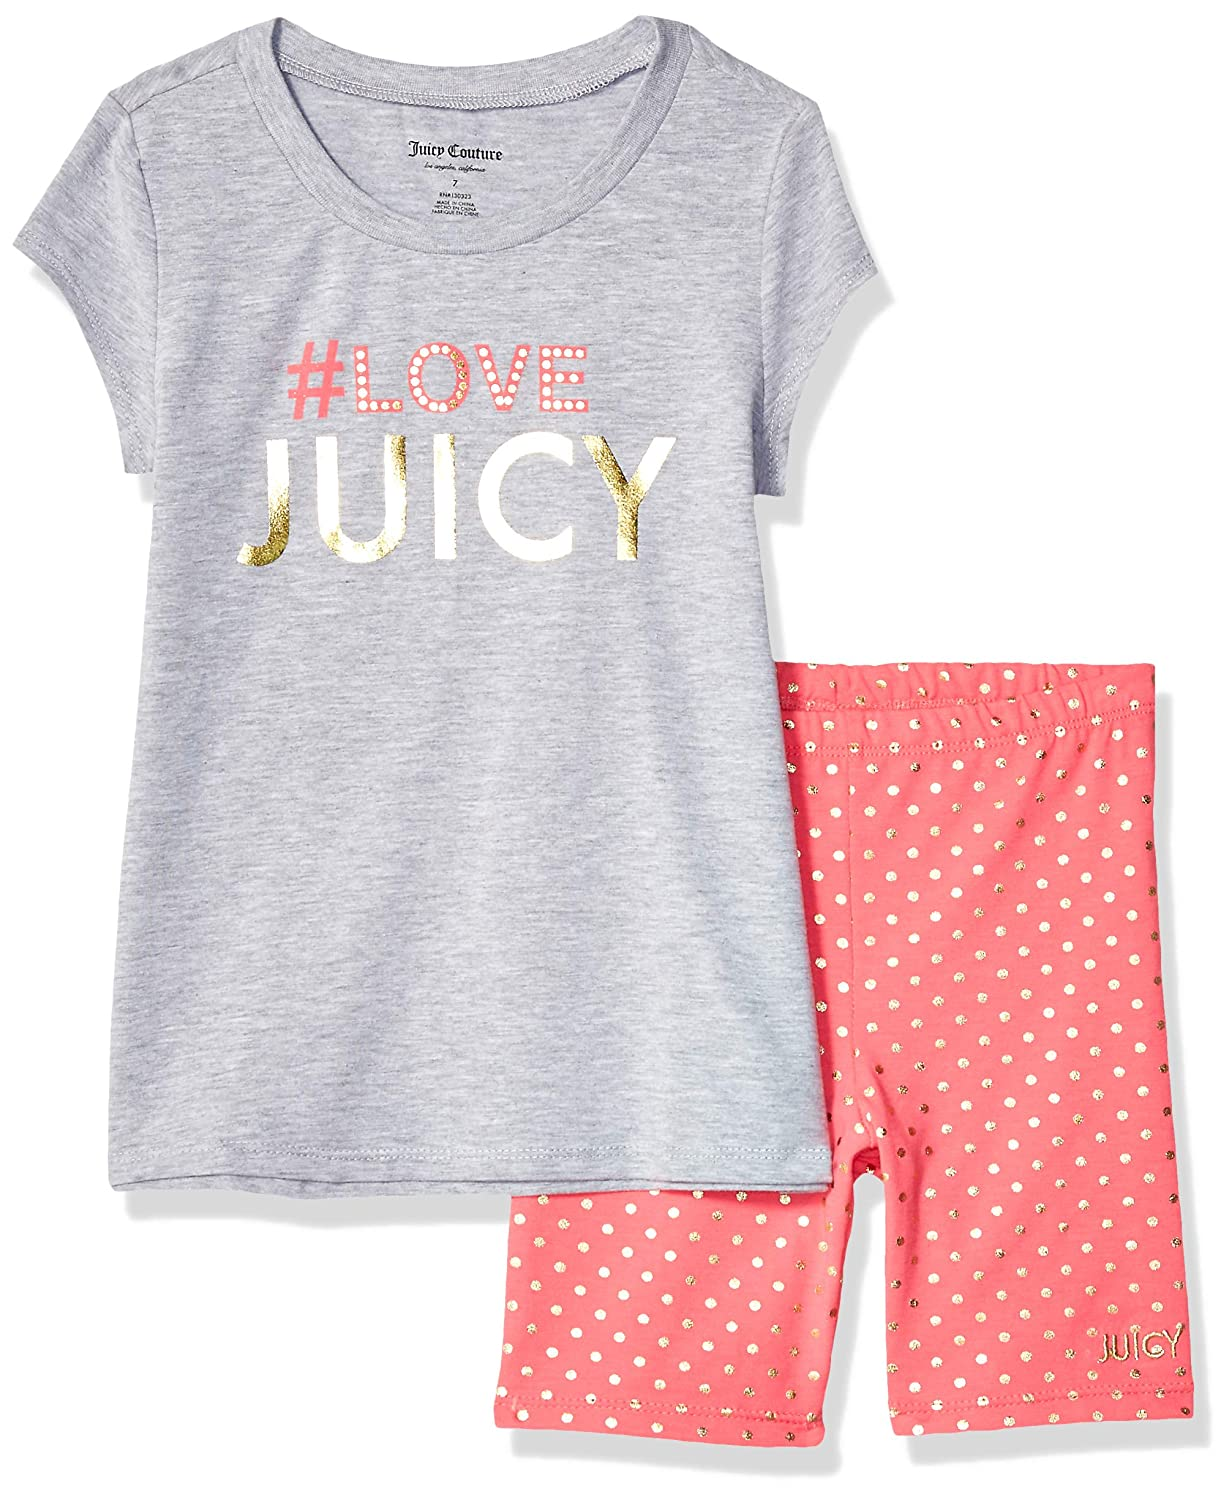 Amazon.com: Juicy Couture - Pantalones cortos para niña (2 ...